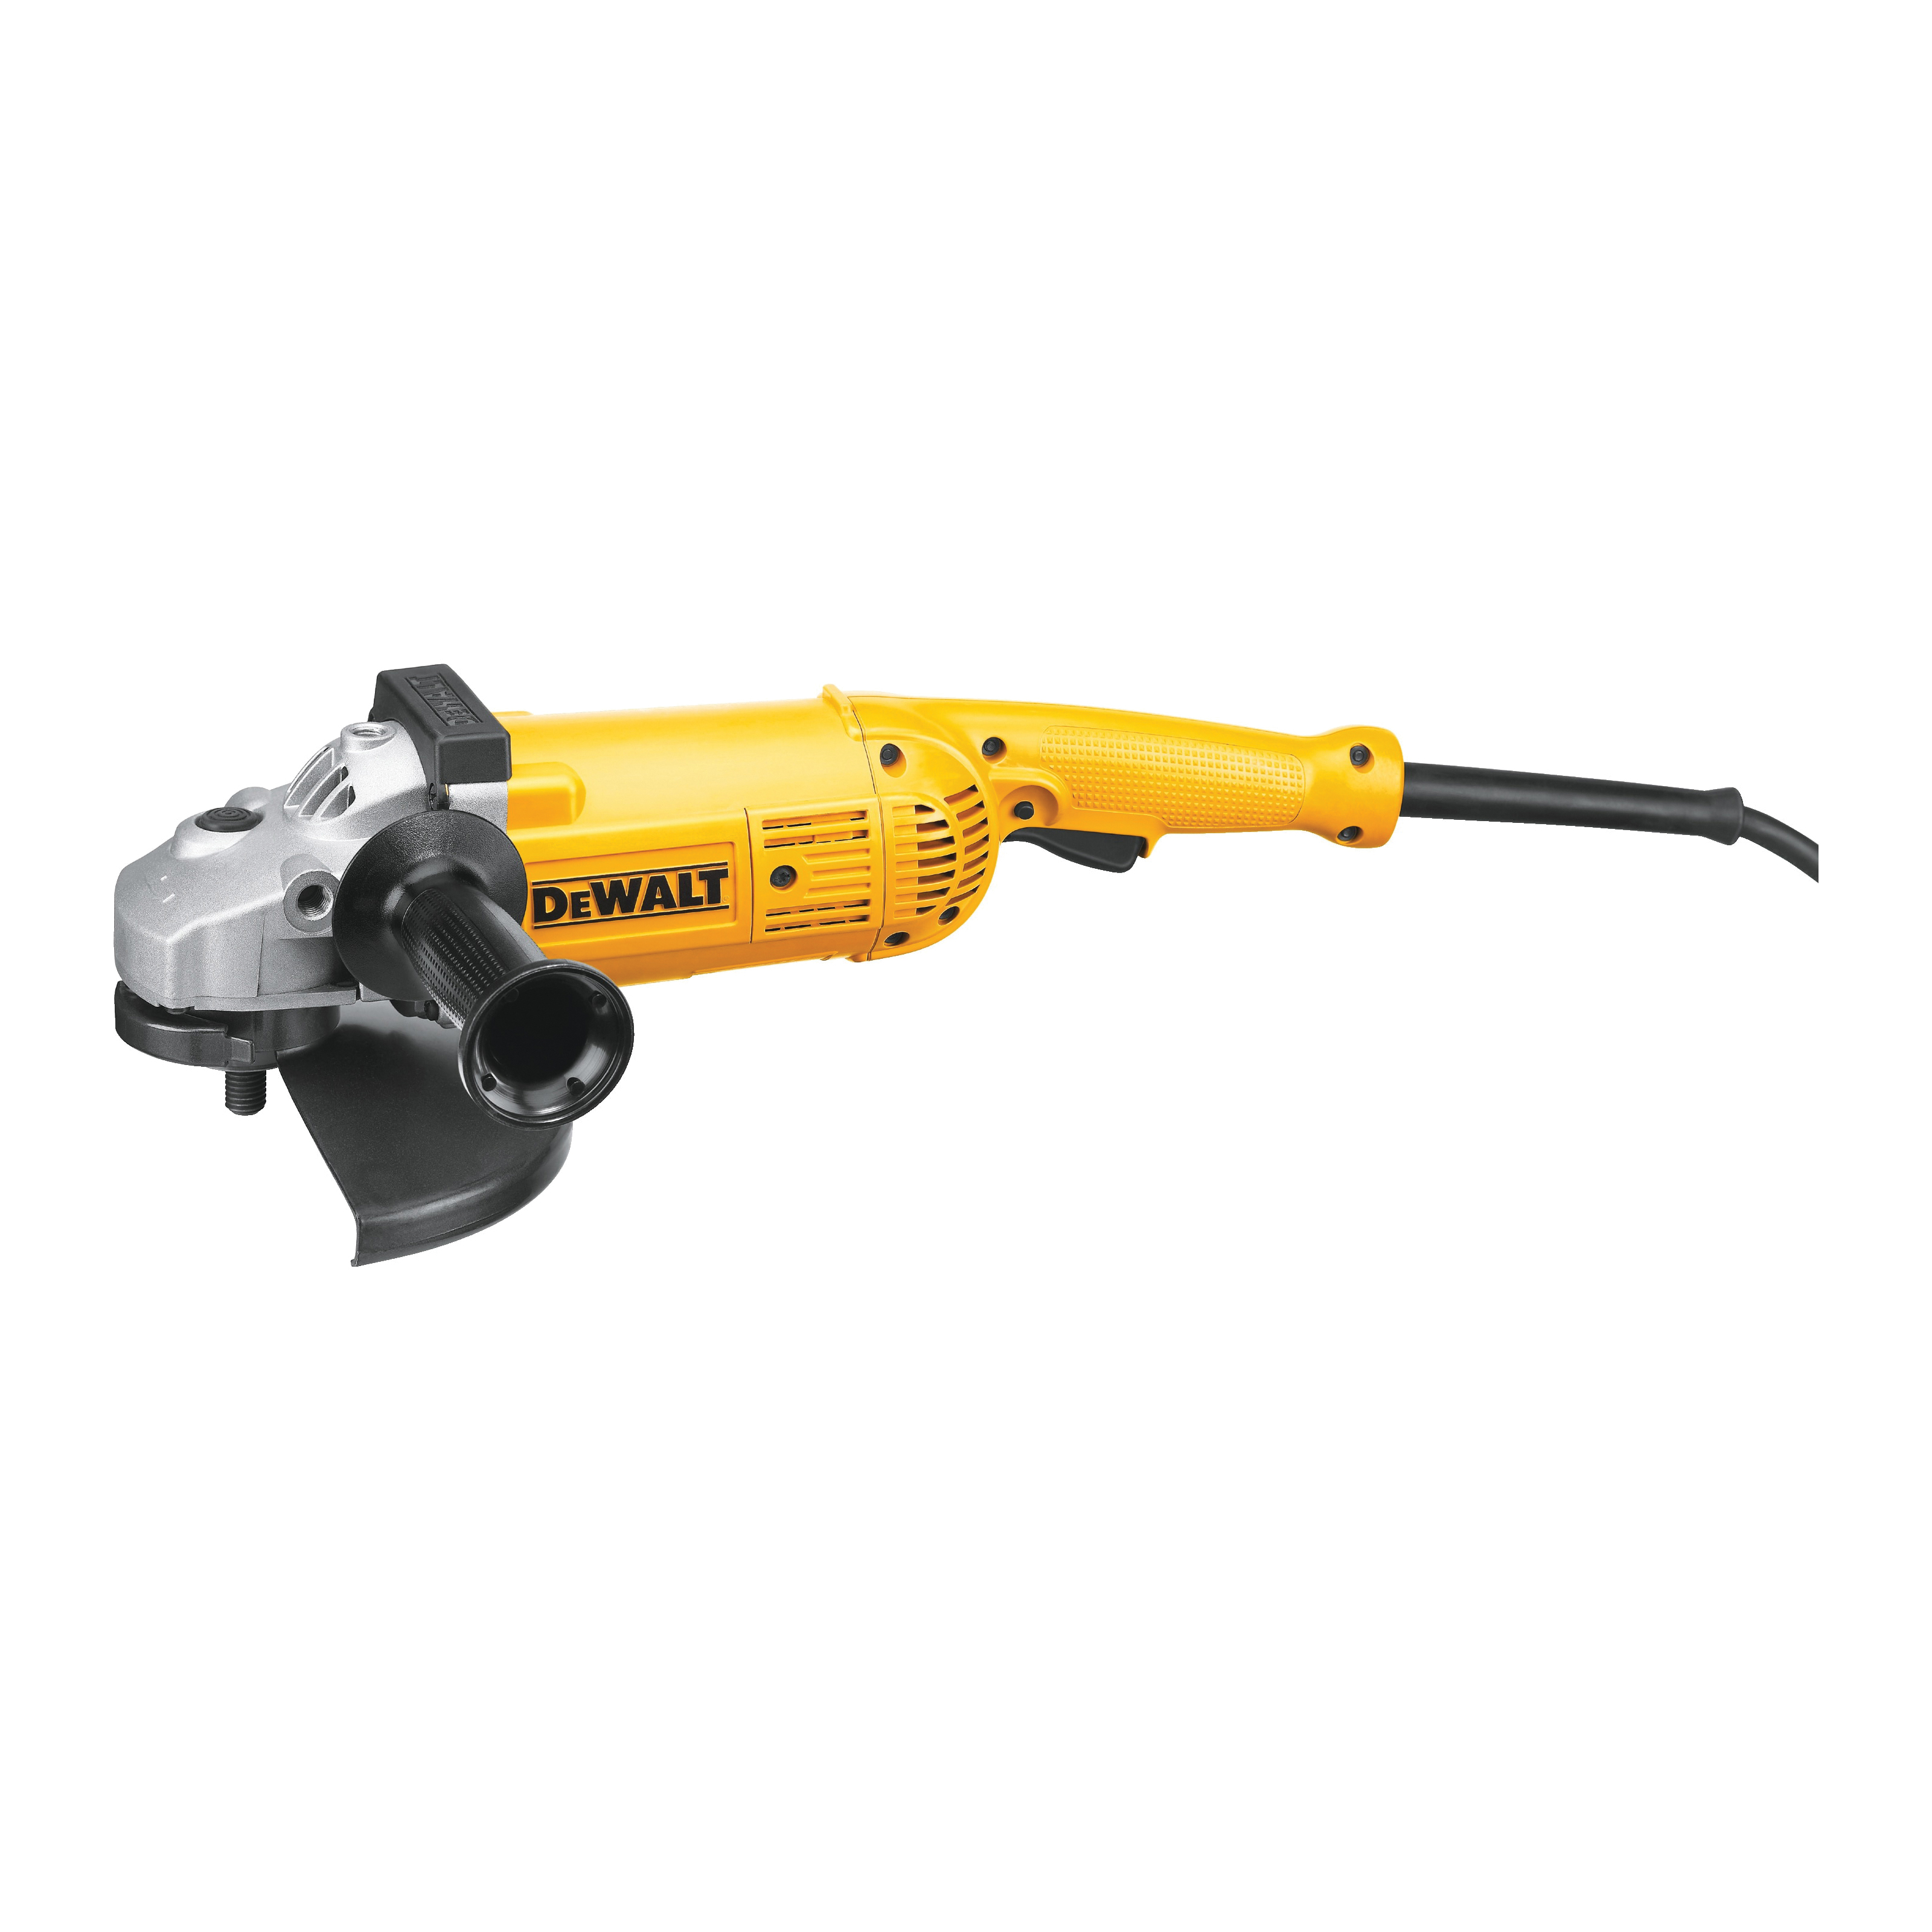 DeWALT® D28499X Large Angle Grinder, 7 in, 9 in Dia Wheel, 5/8 in Arbor/Shank, 120 VAC, Yellow, Lock-On-Off Trigger Switch